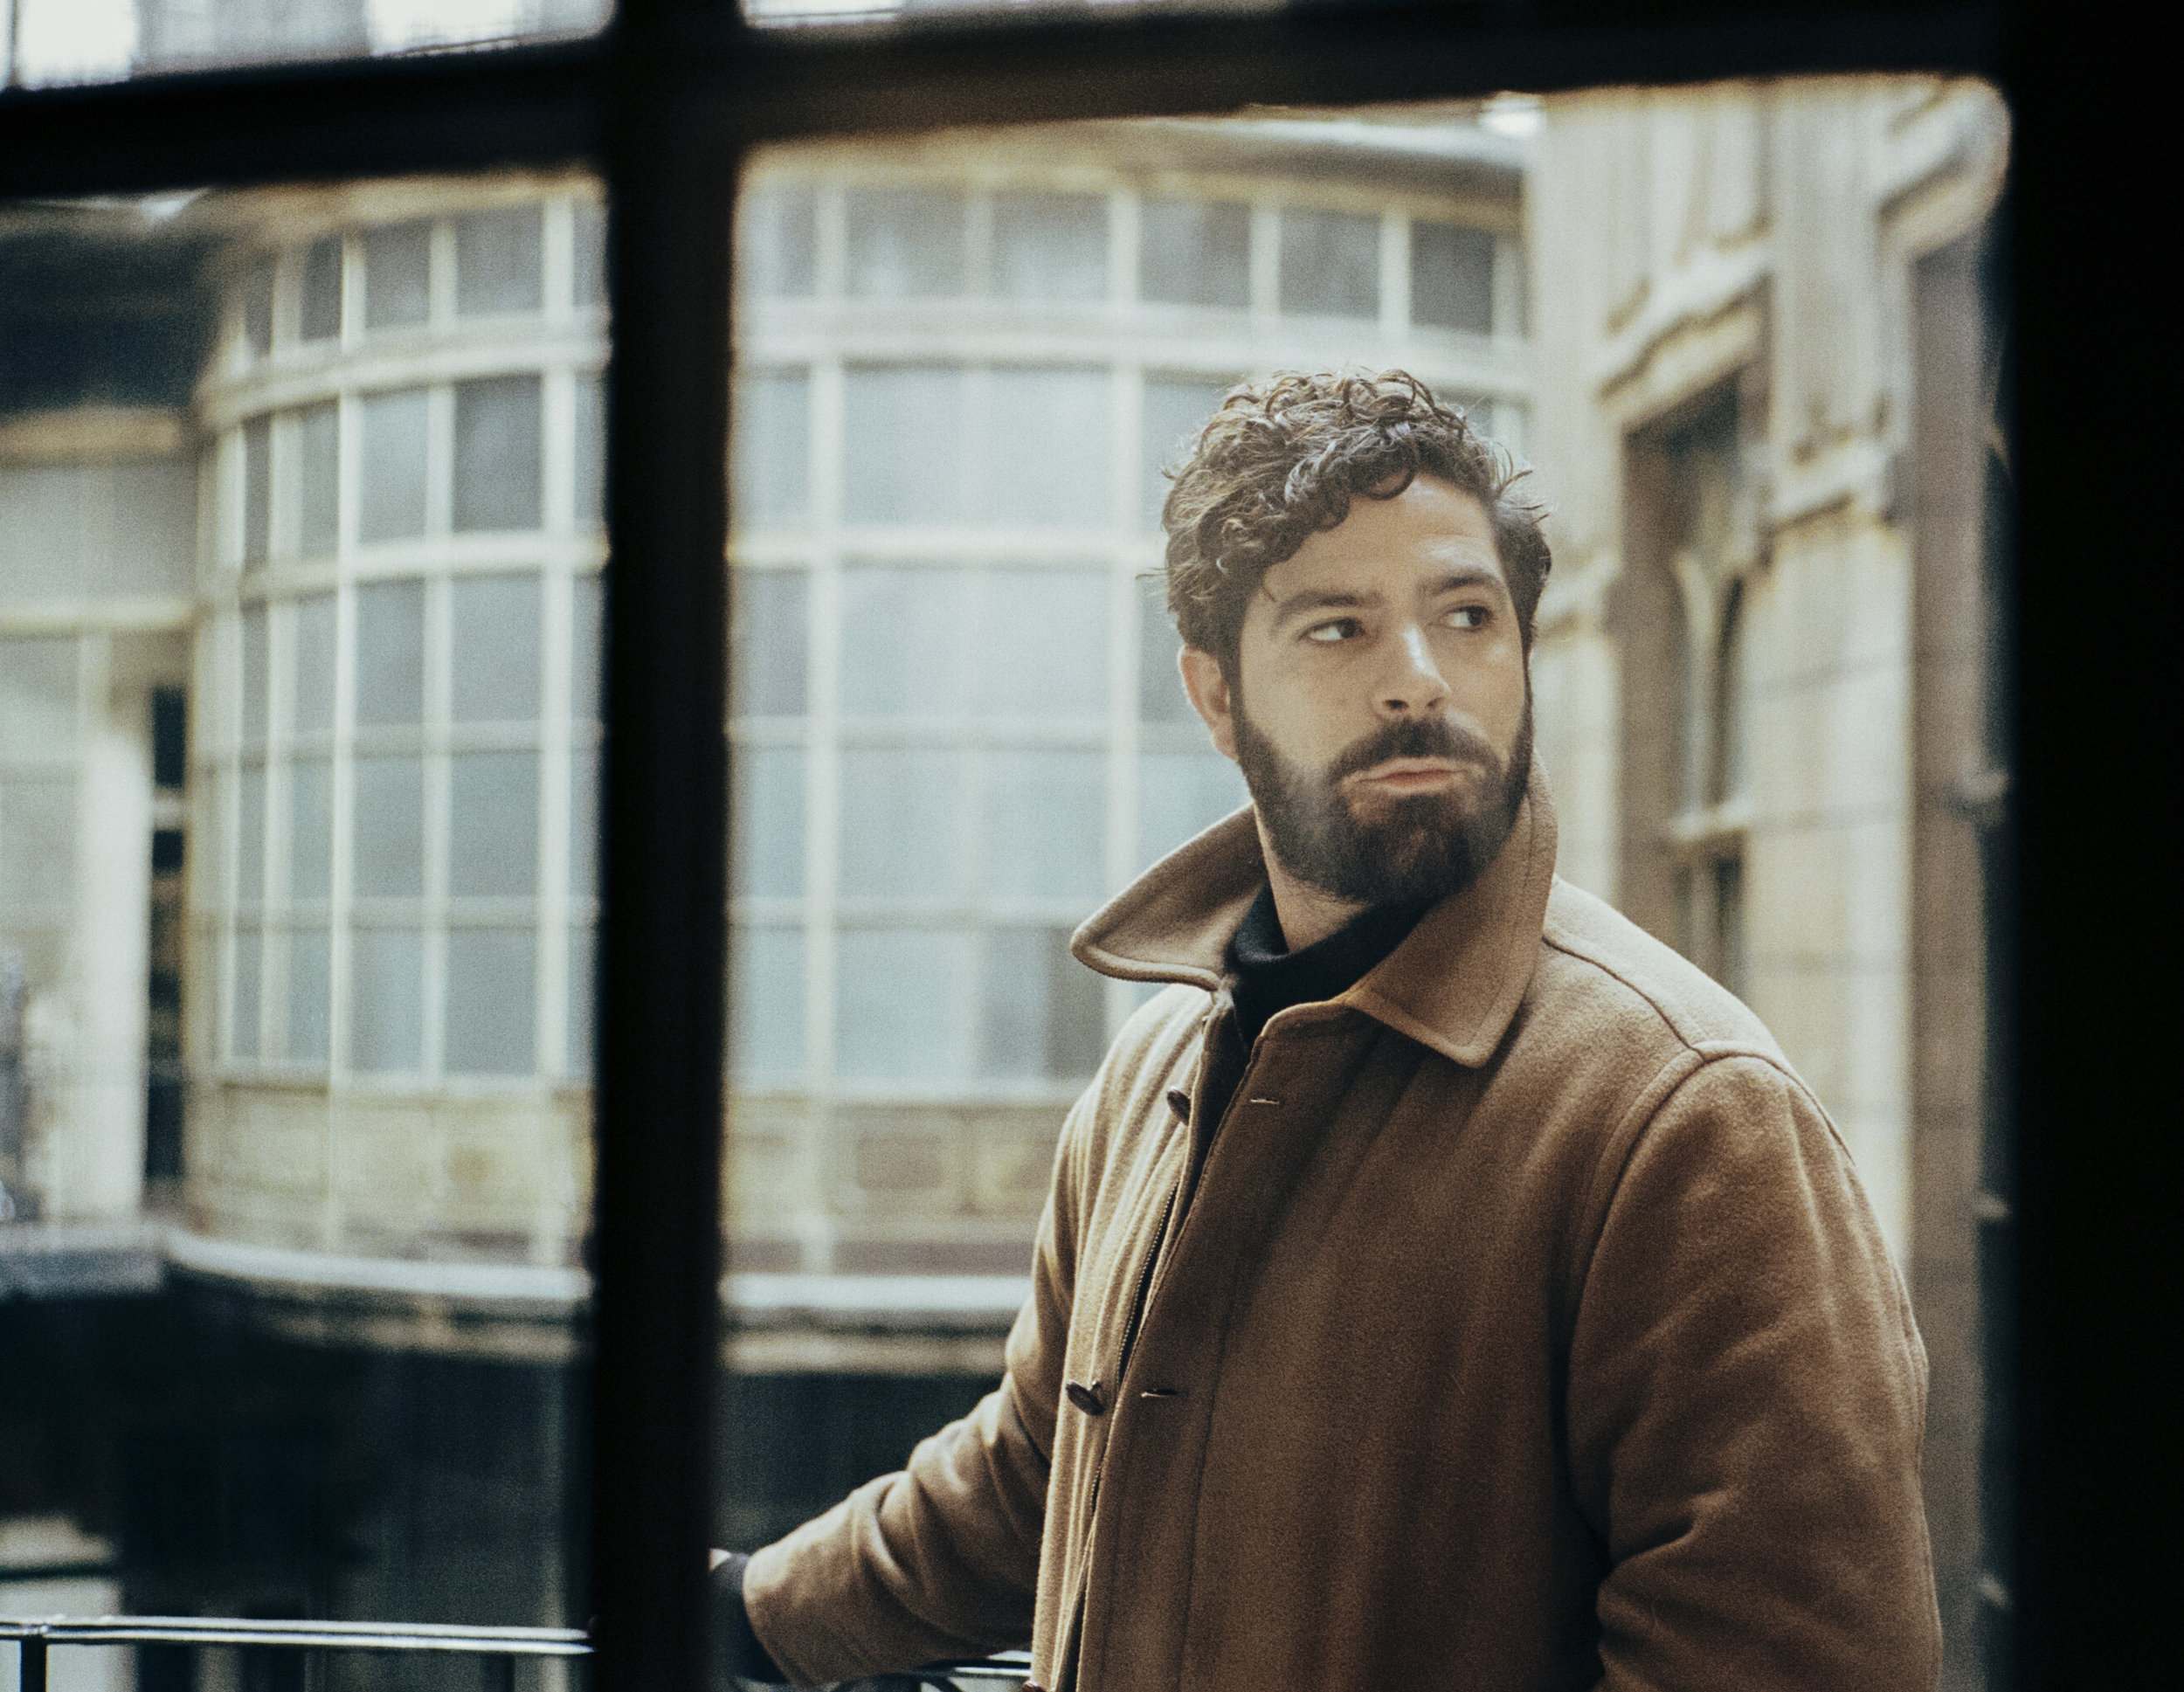 Yannis_Window1_V4.jpg